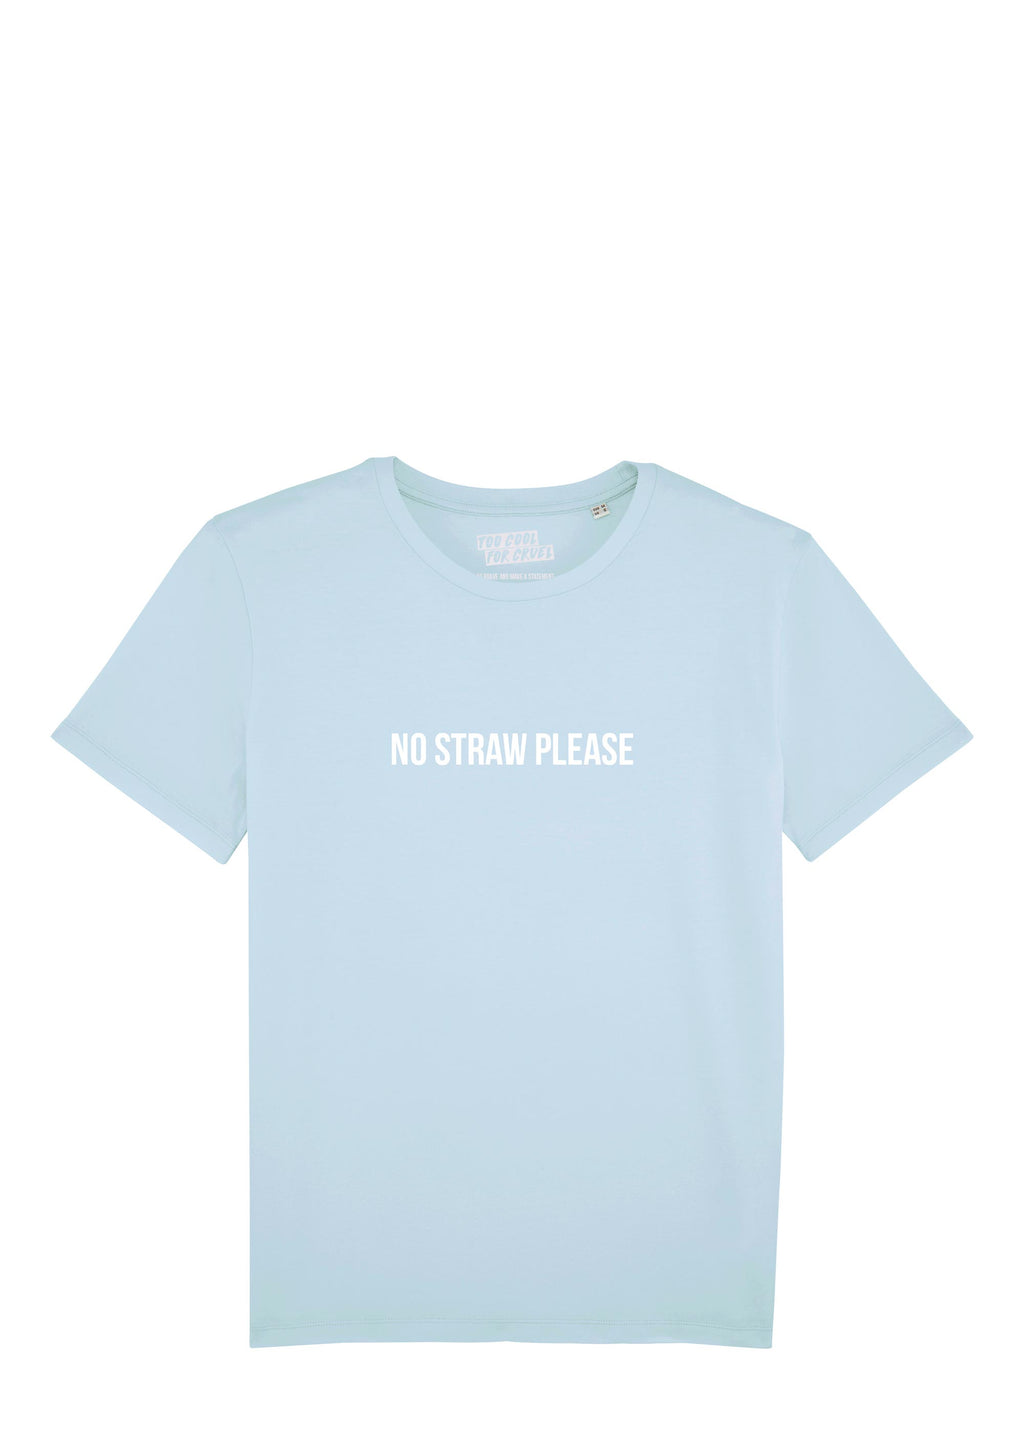 NO STRAW PLEASE SHIRT (unisex)